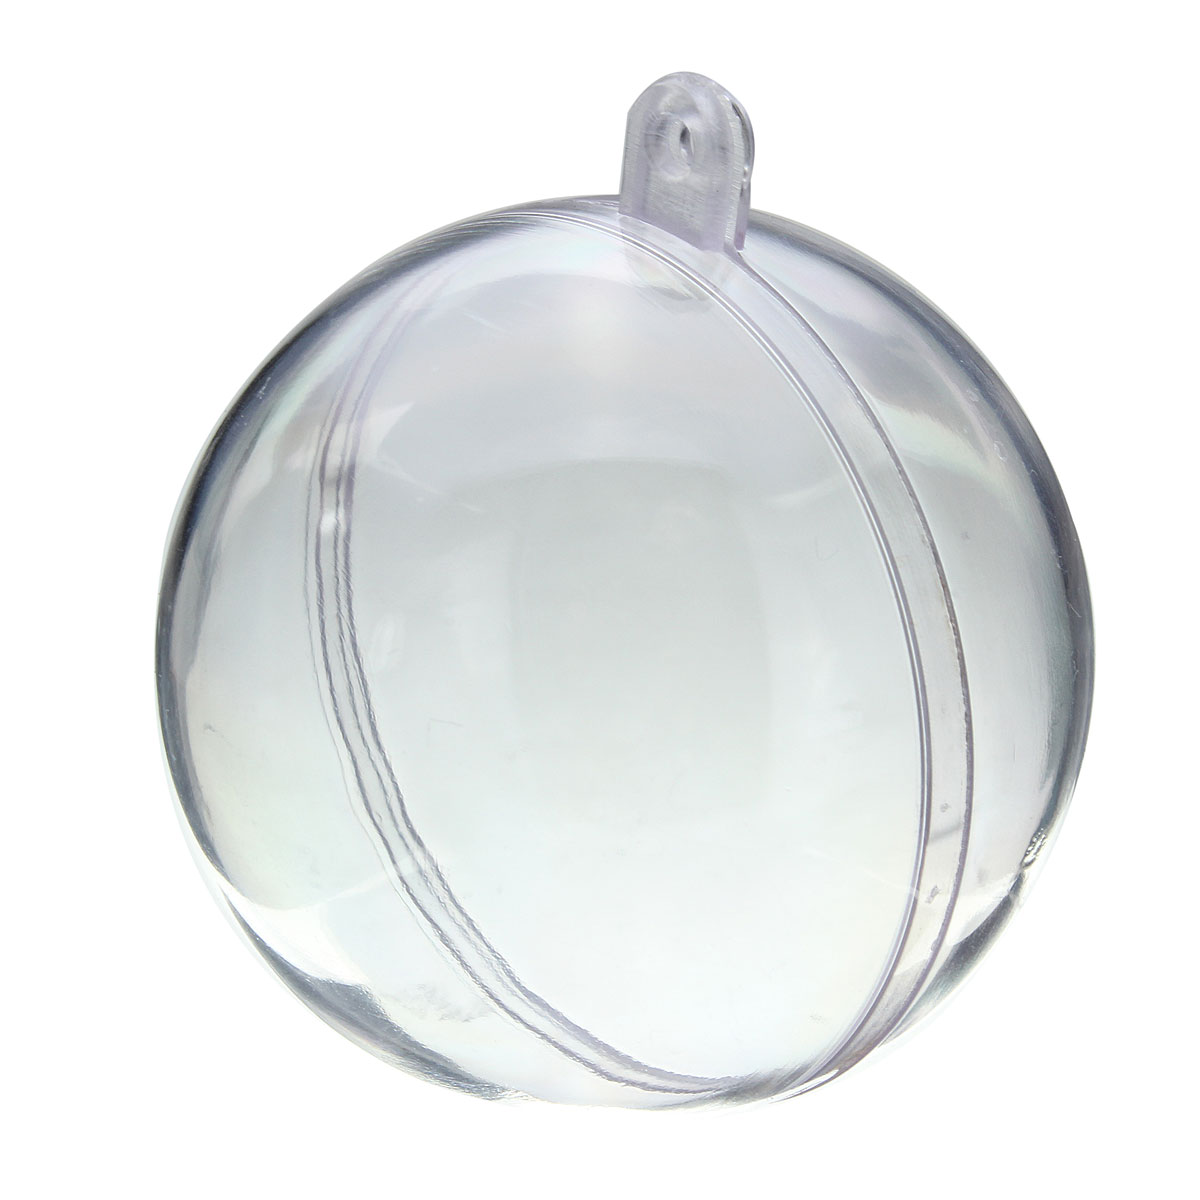 Plastic ornament - Clear Plastic Christmas Ball Ornament Crafts Clear Plastic Christmas Ball Ornament Crafts Detail Image